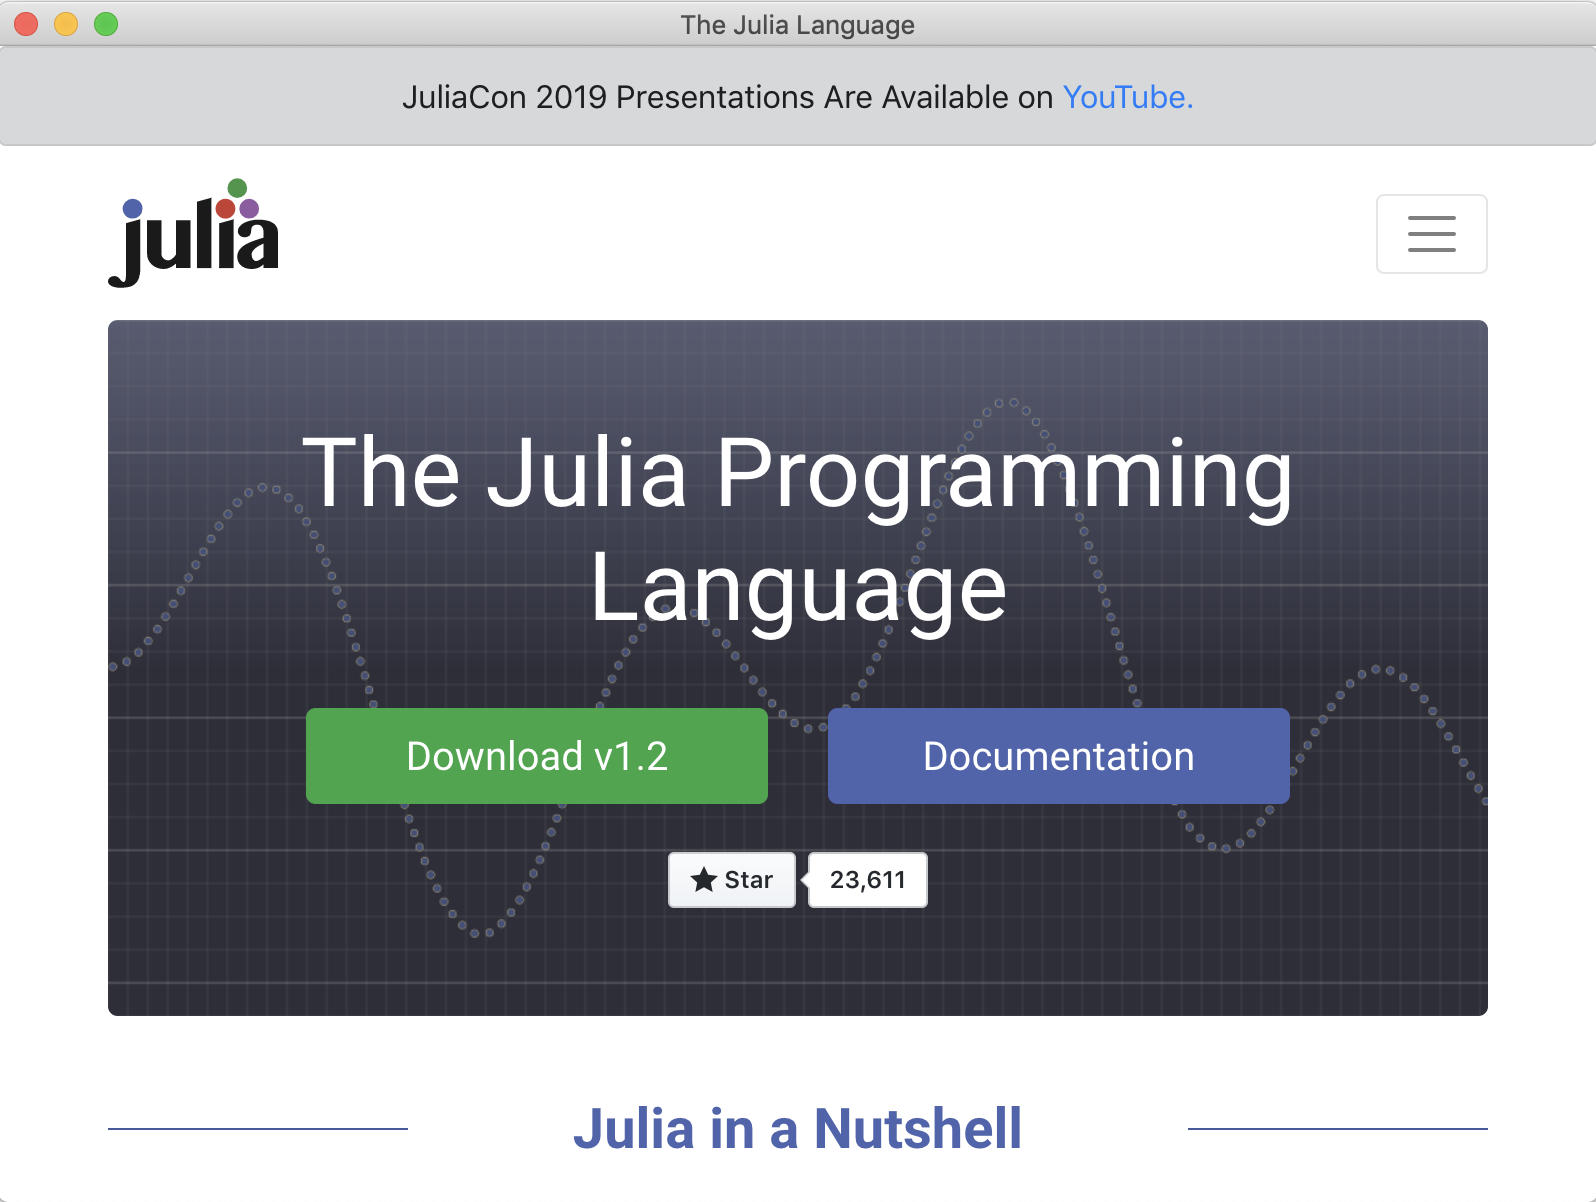 Blink Window showing the JuliaLang website